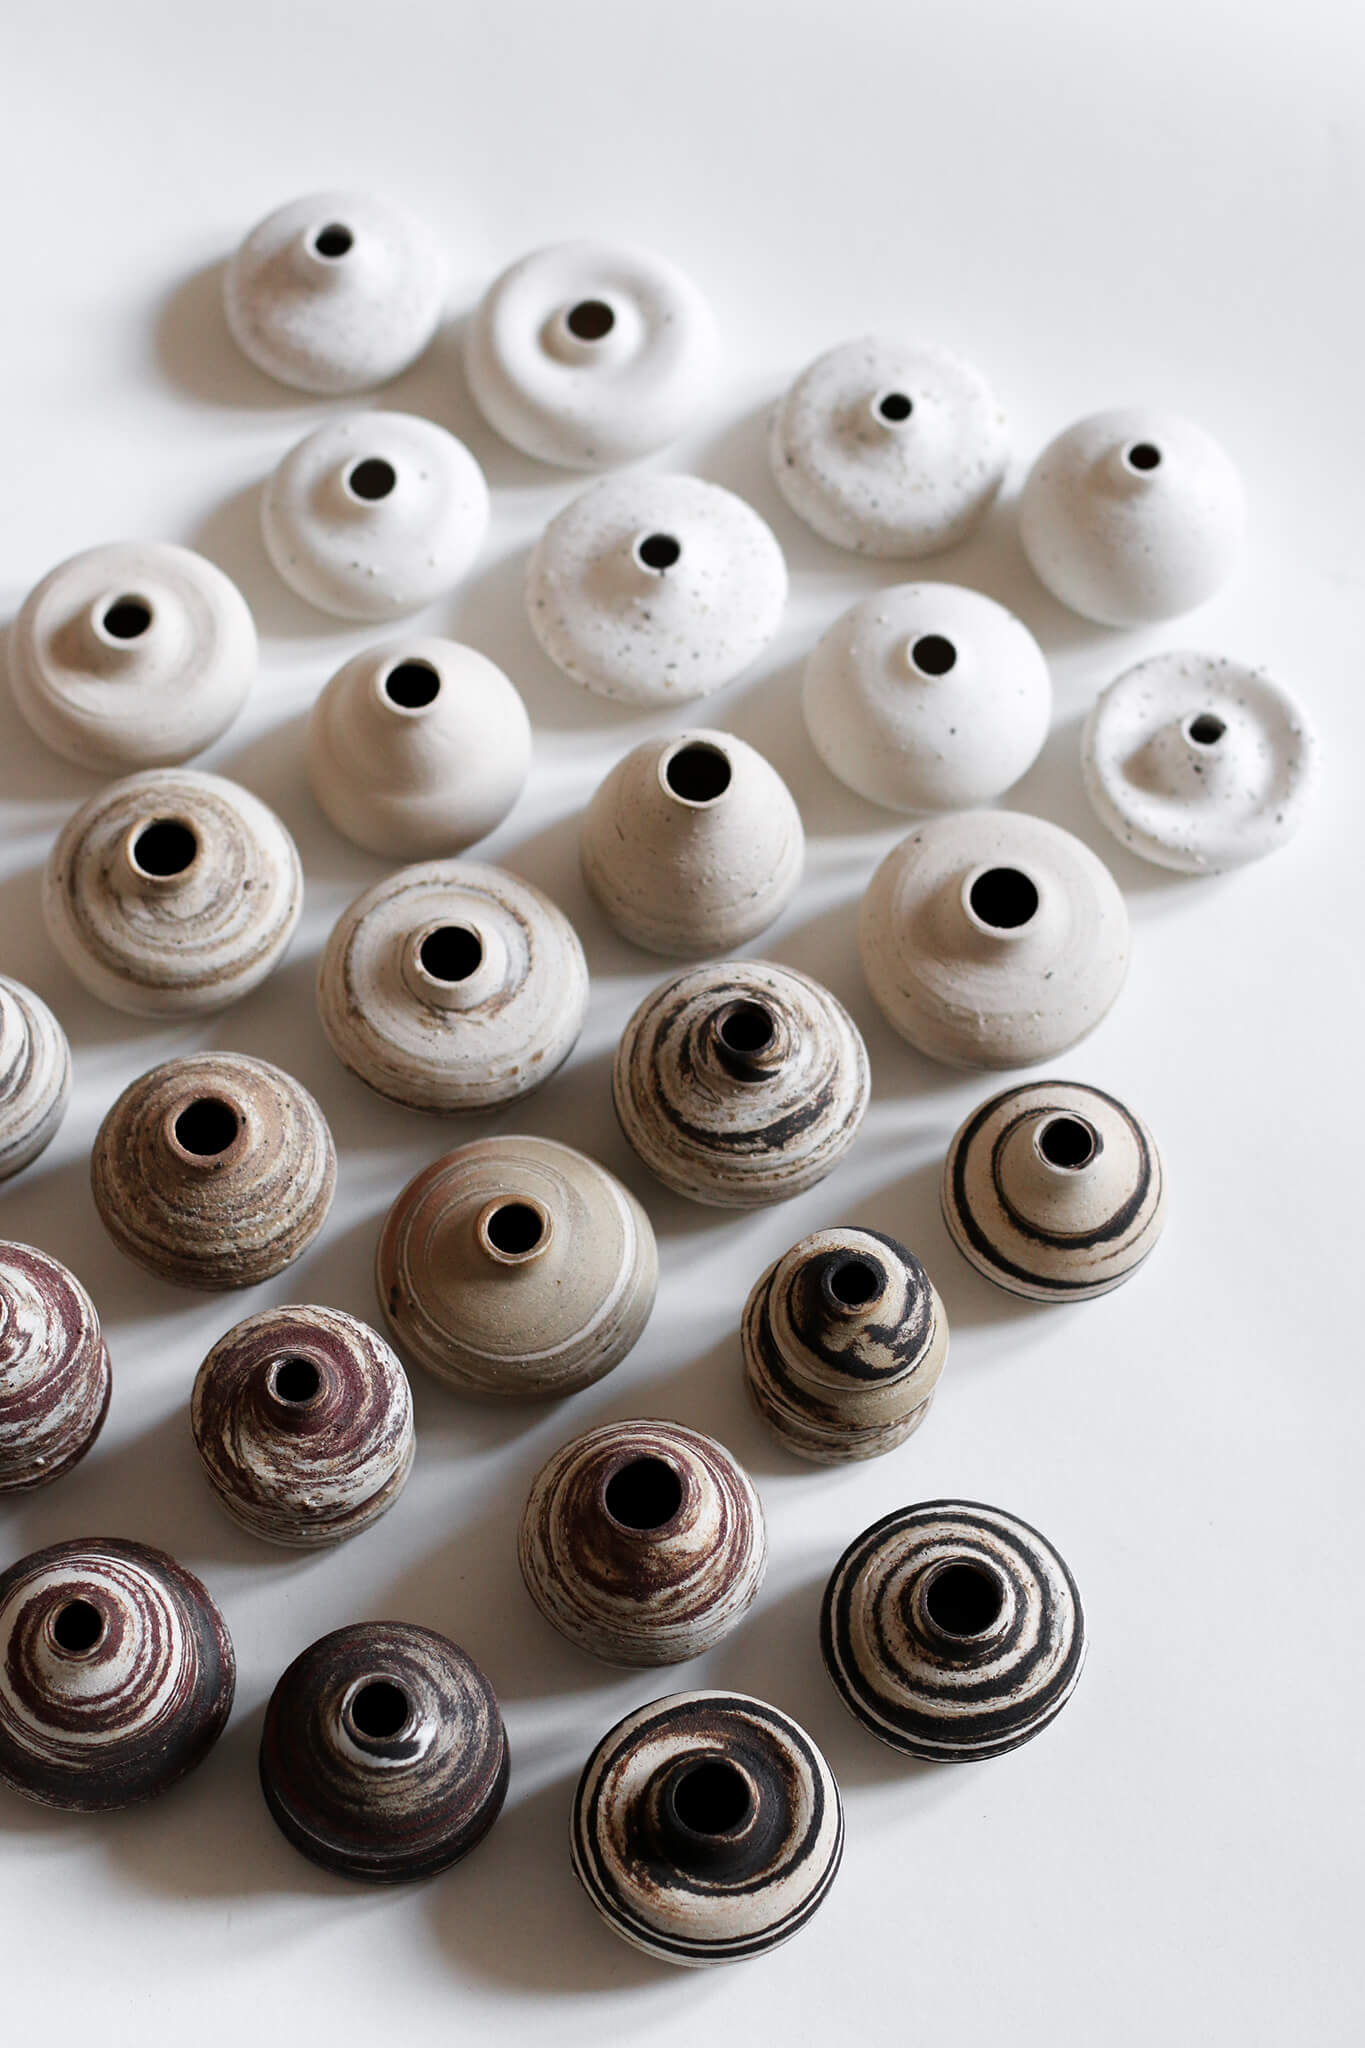 Collection of mini Sandscape Vases by Julija Pustovrh